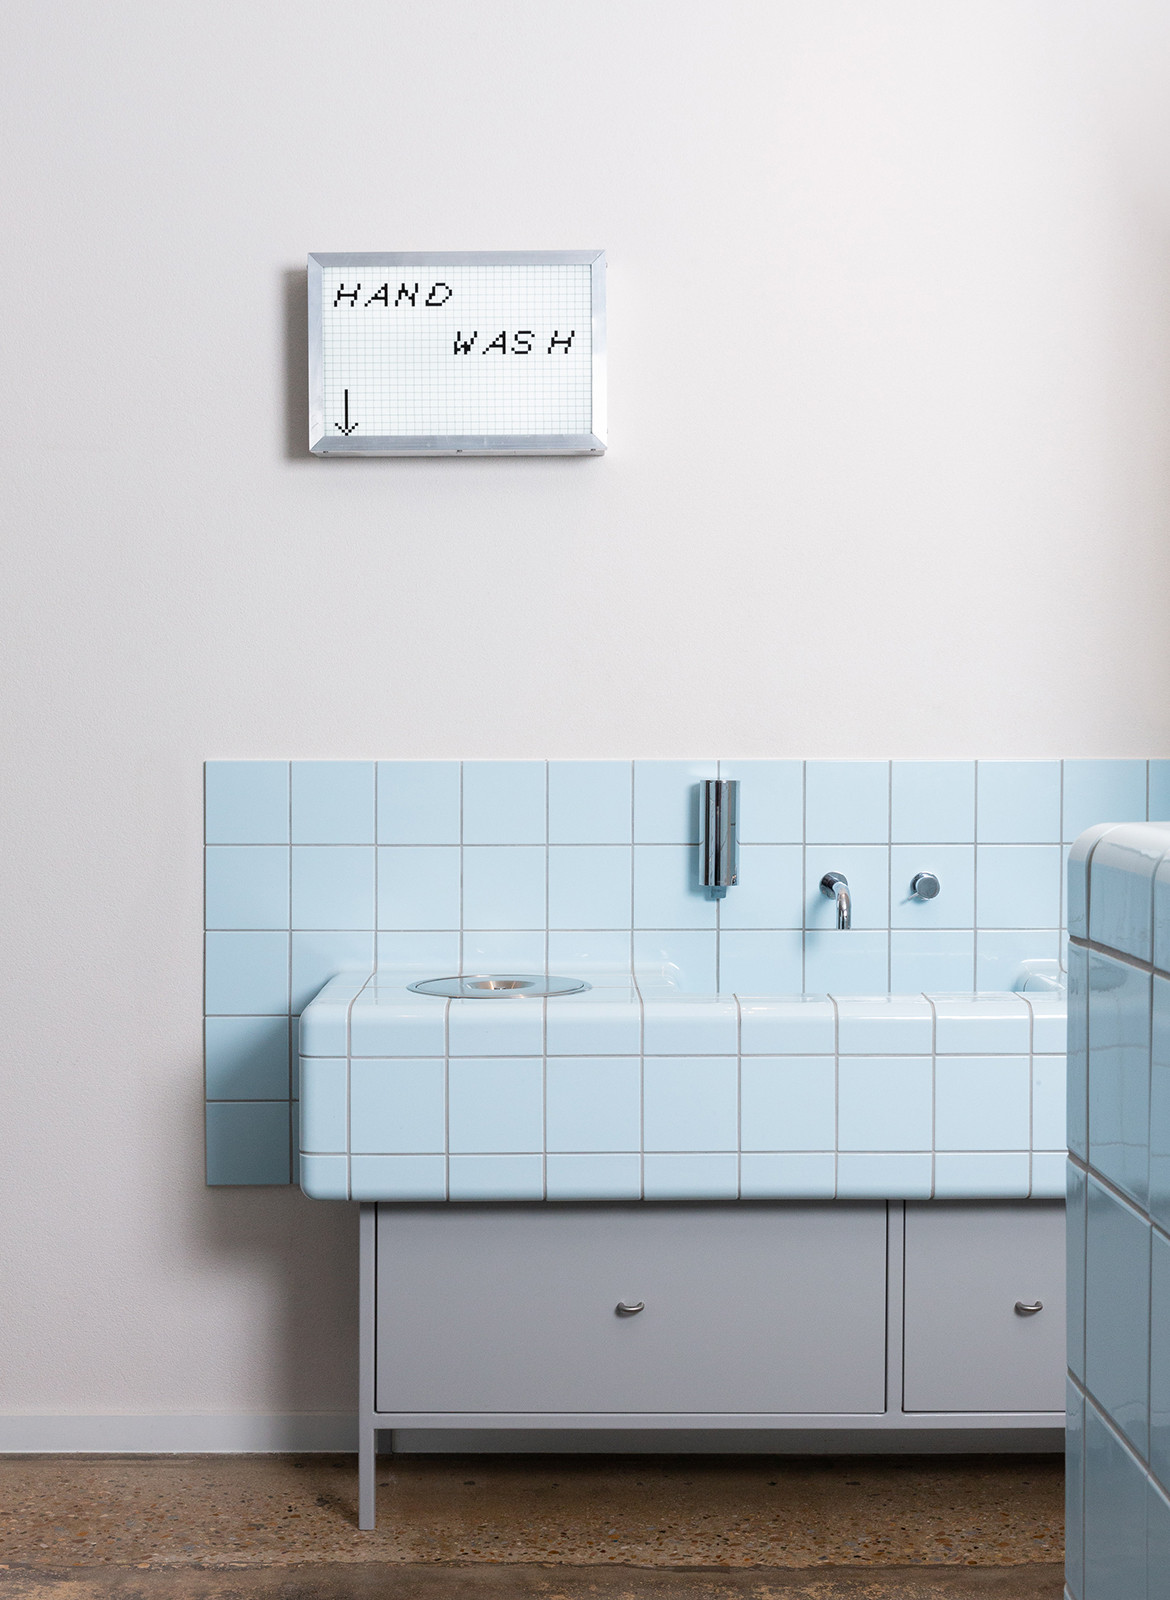 Ban Ban Genesin Studio Adelaide bathroom